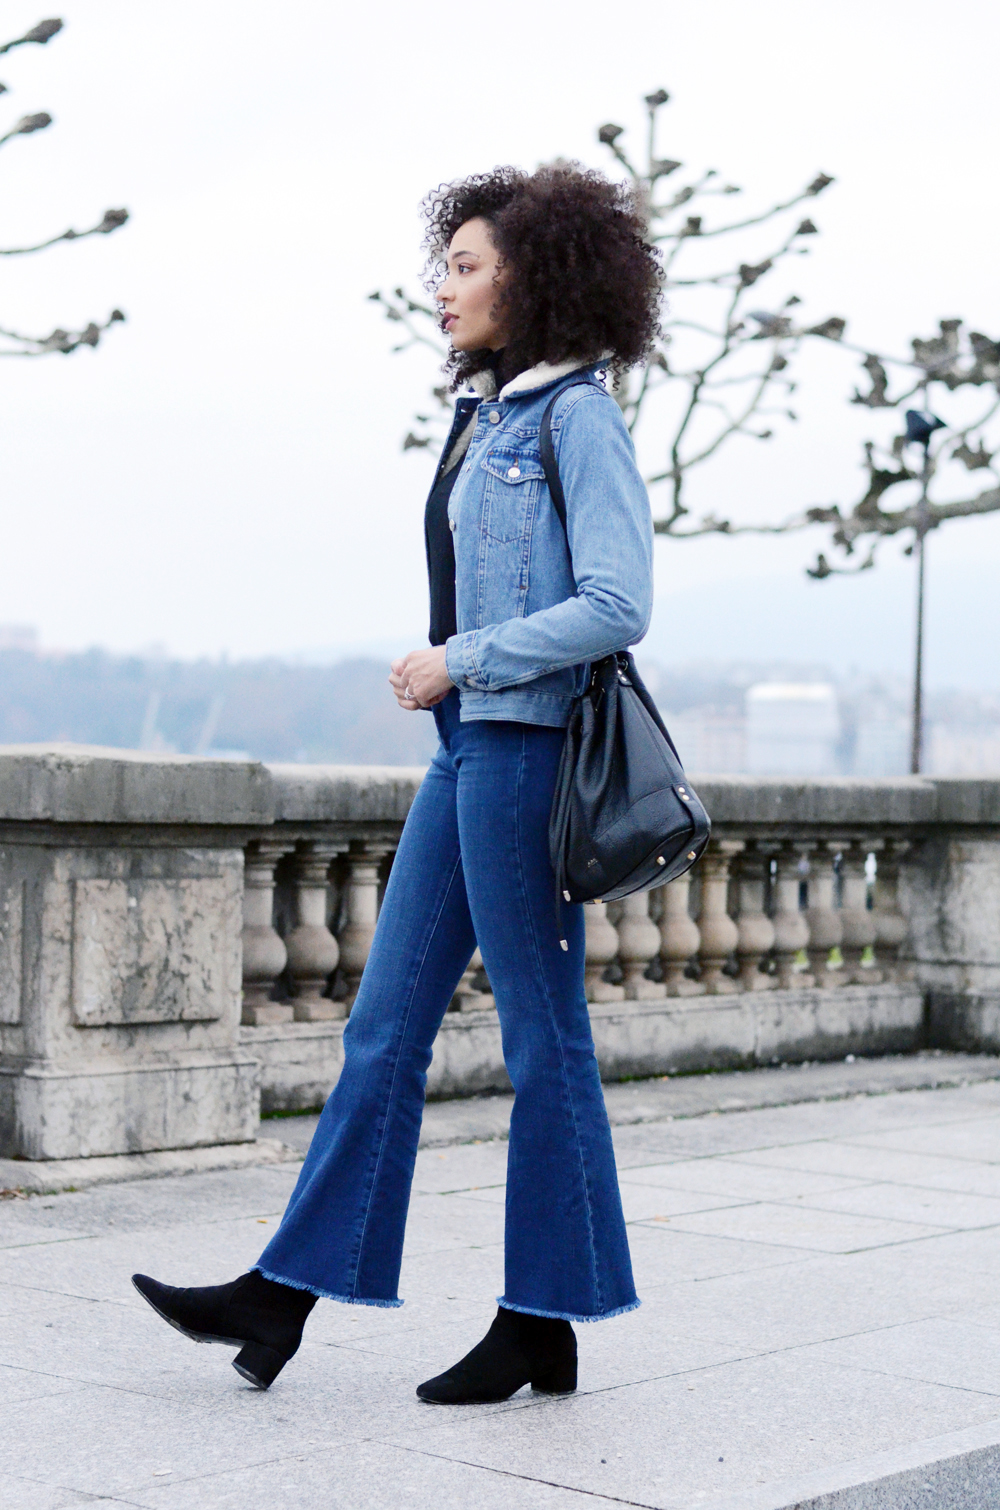 mercredie-blog-mode-geneve-suisse-blogueuse-bloggeuse-jean-flare-selected-sfena-aldo-stefi-boots-topshop-denim-jean-jacket-levis-turtle-neck-black10